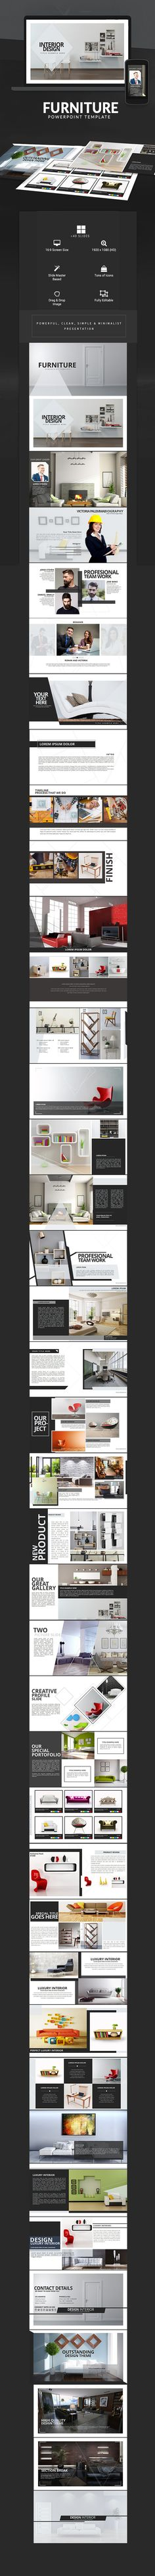 lion multipurpose powerpoint presentation template | powerpoint, Presentation templates